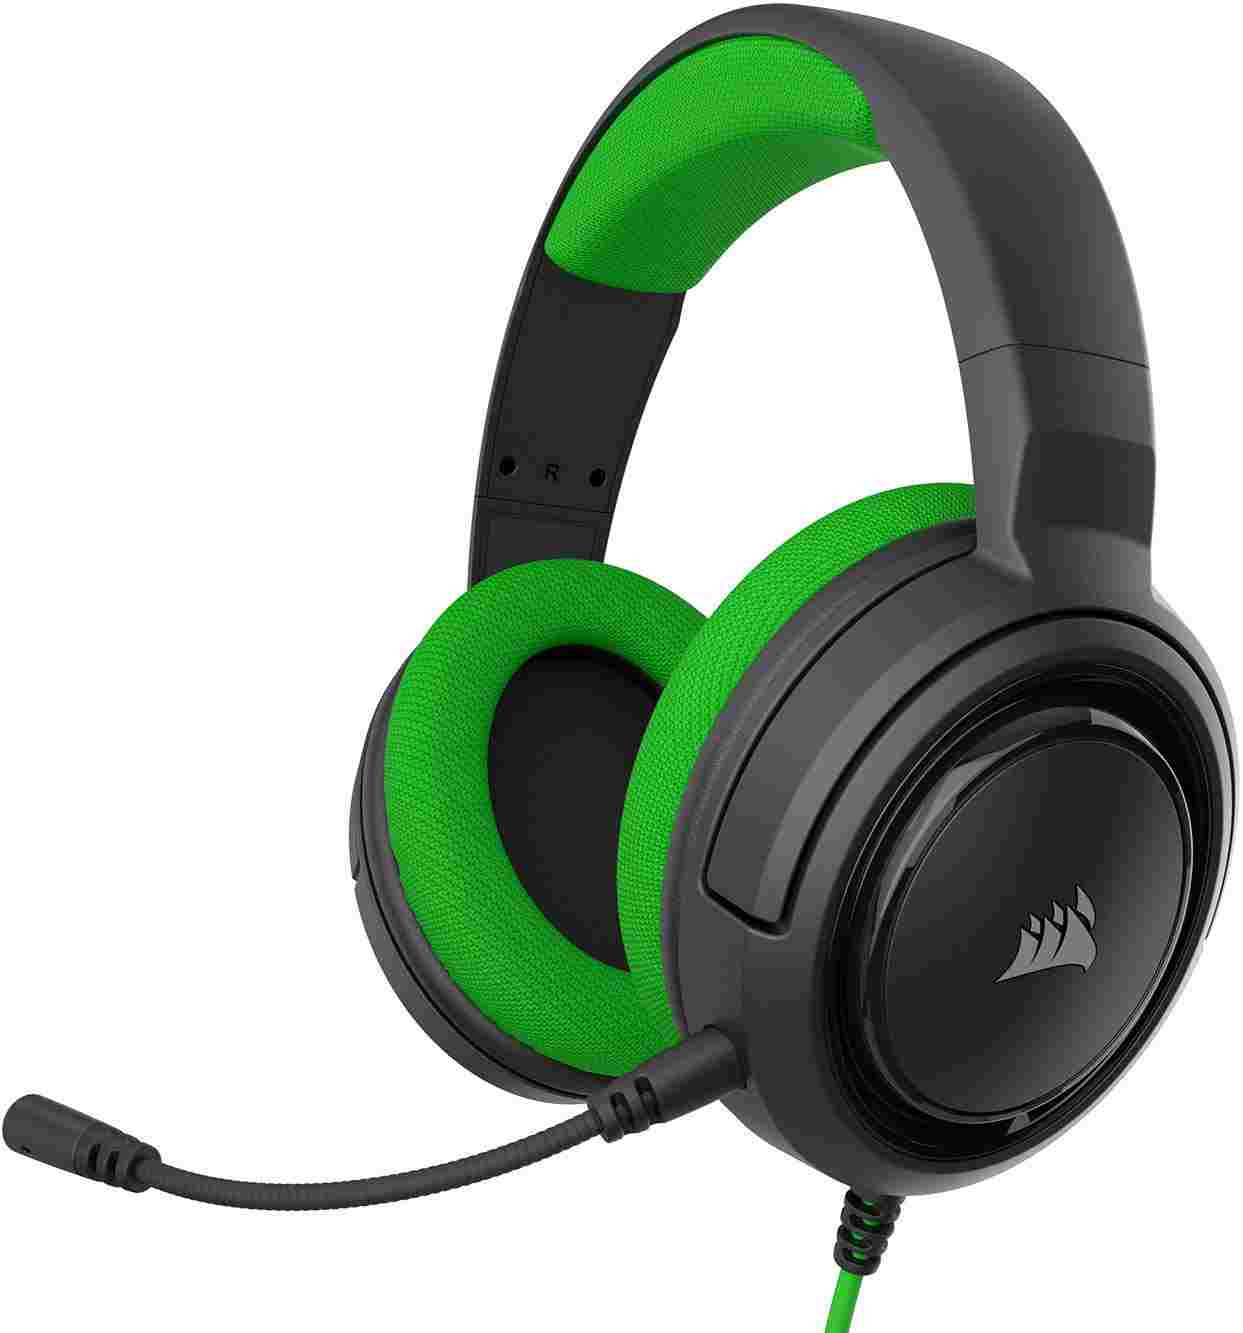 Corsair HS35 Stereo Gaming Headphones